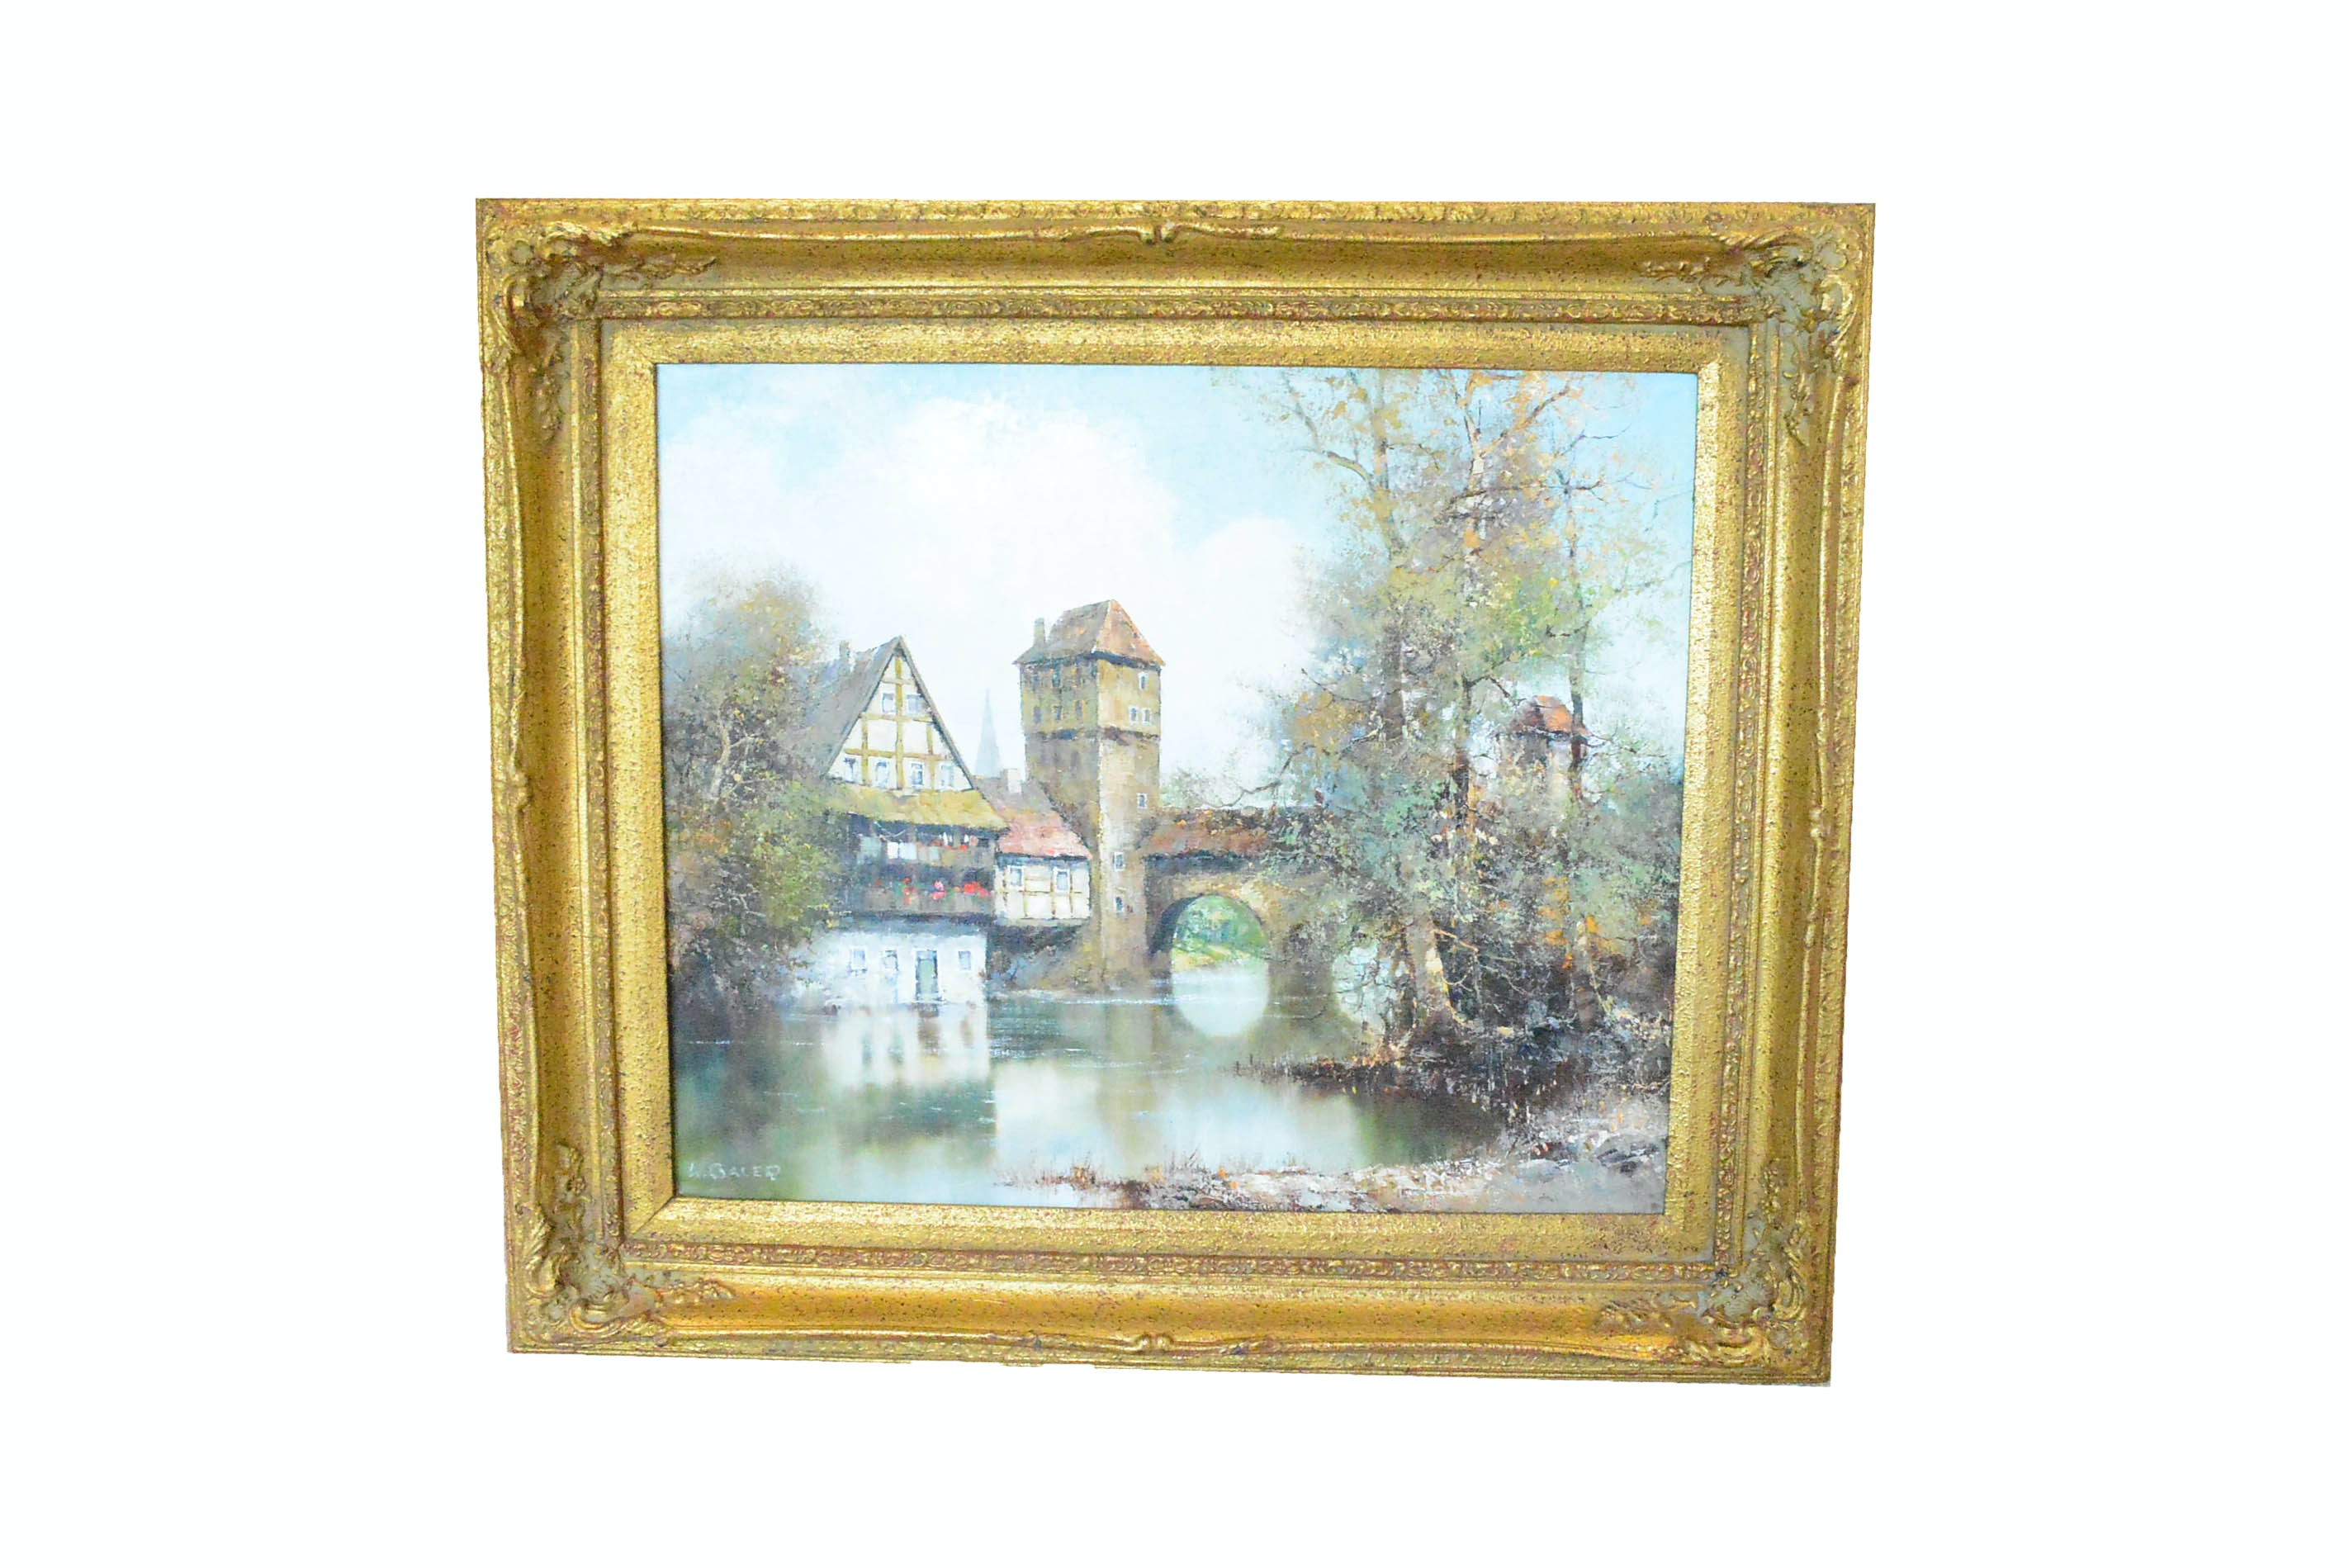 Framed Original Oil Painting by Willi Bauer